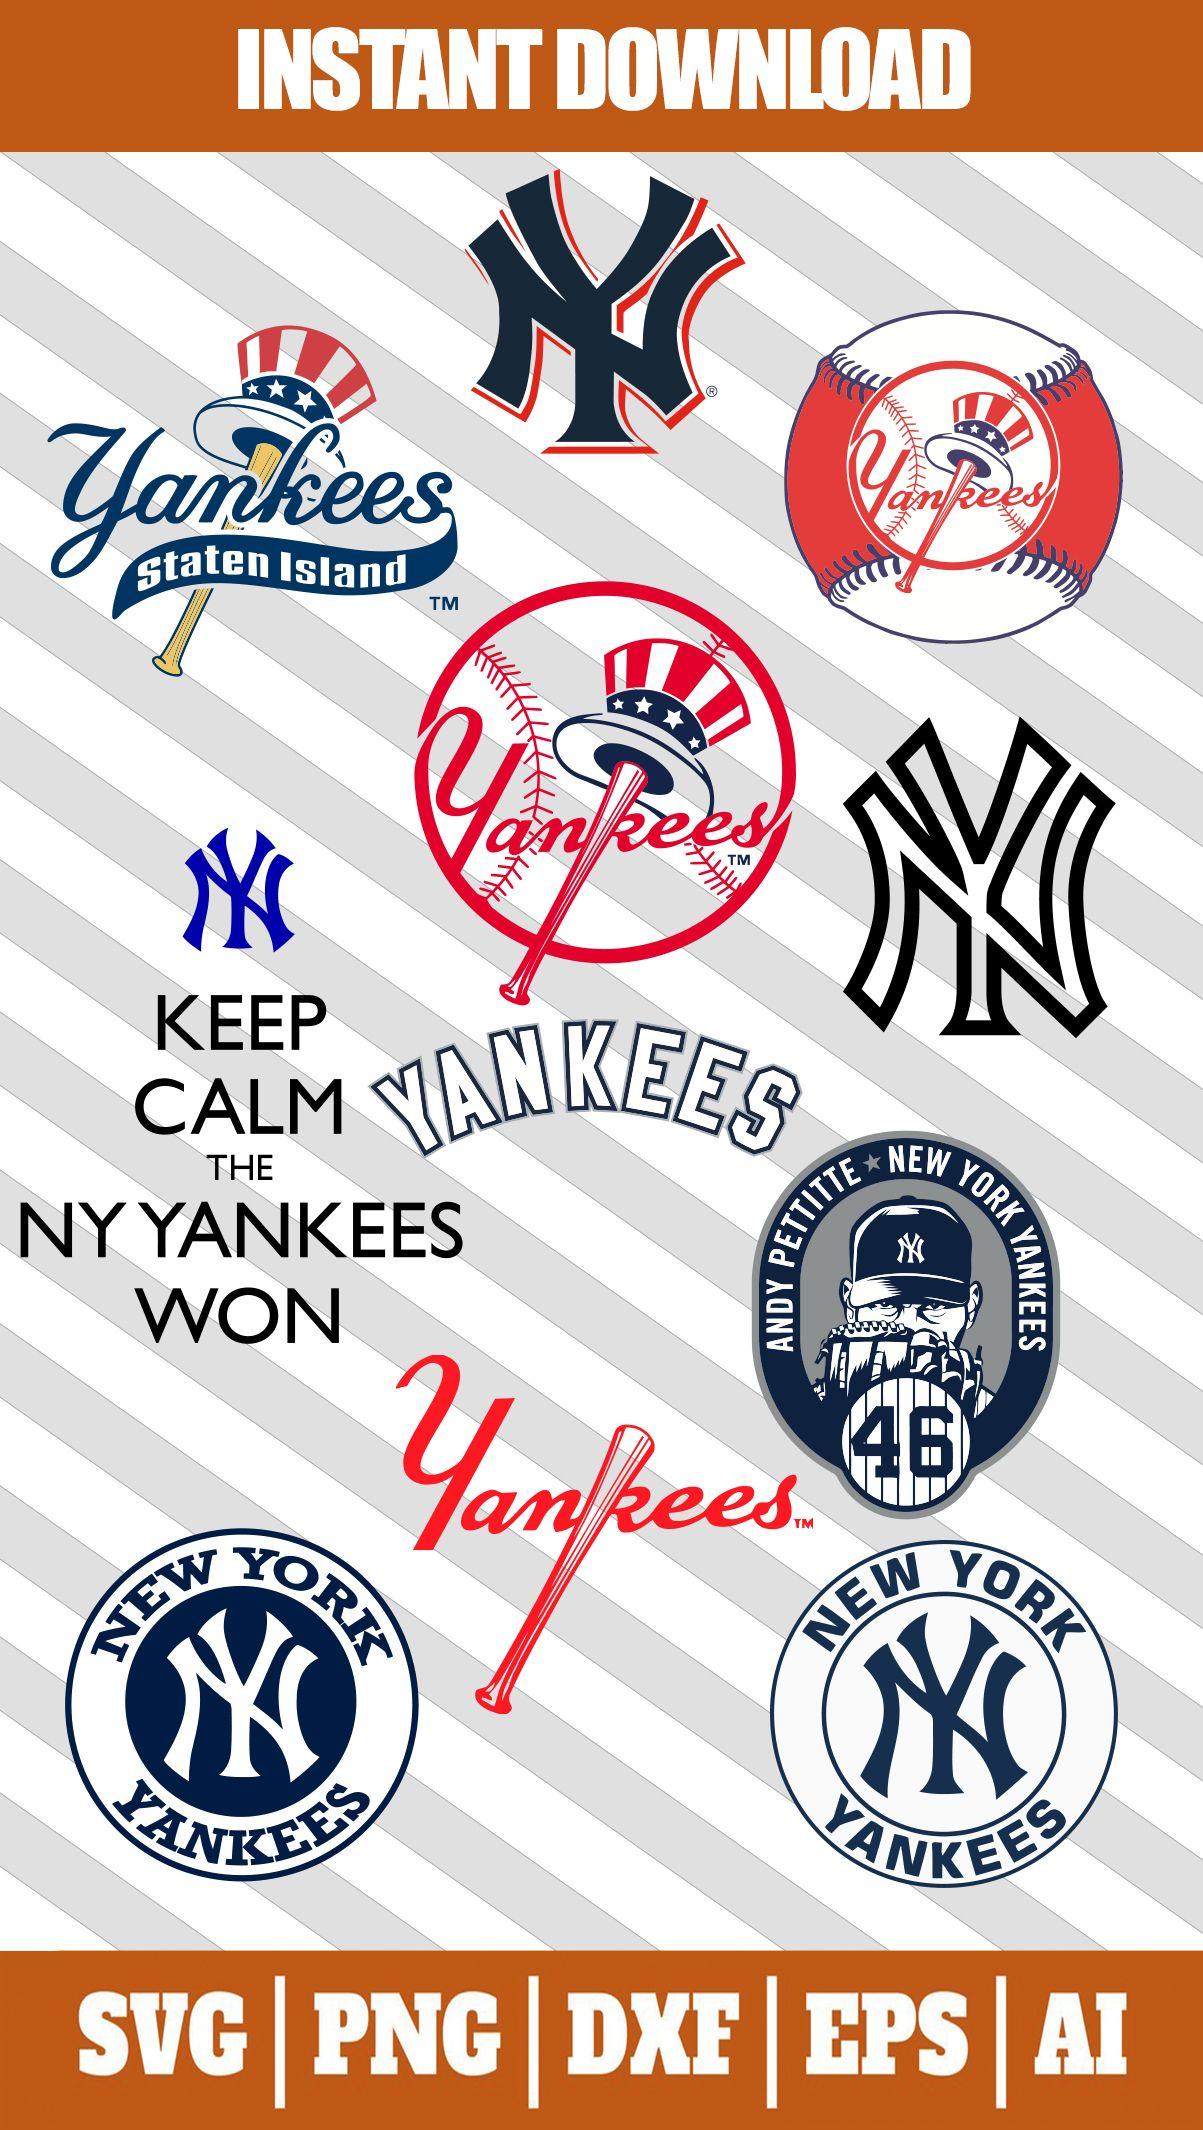 New York Yankees Logo Svg Files For Cricut In 2020 New York Yankees Logo Yankees Logo New York Yankees